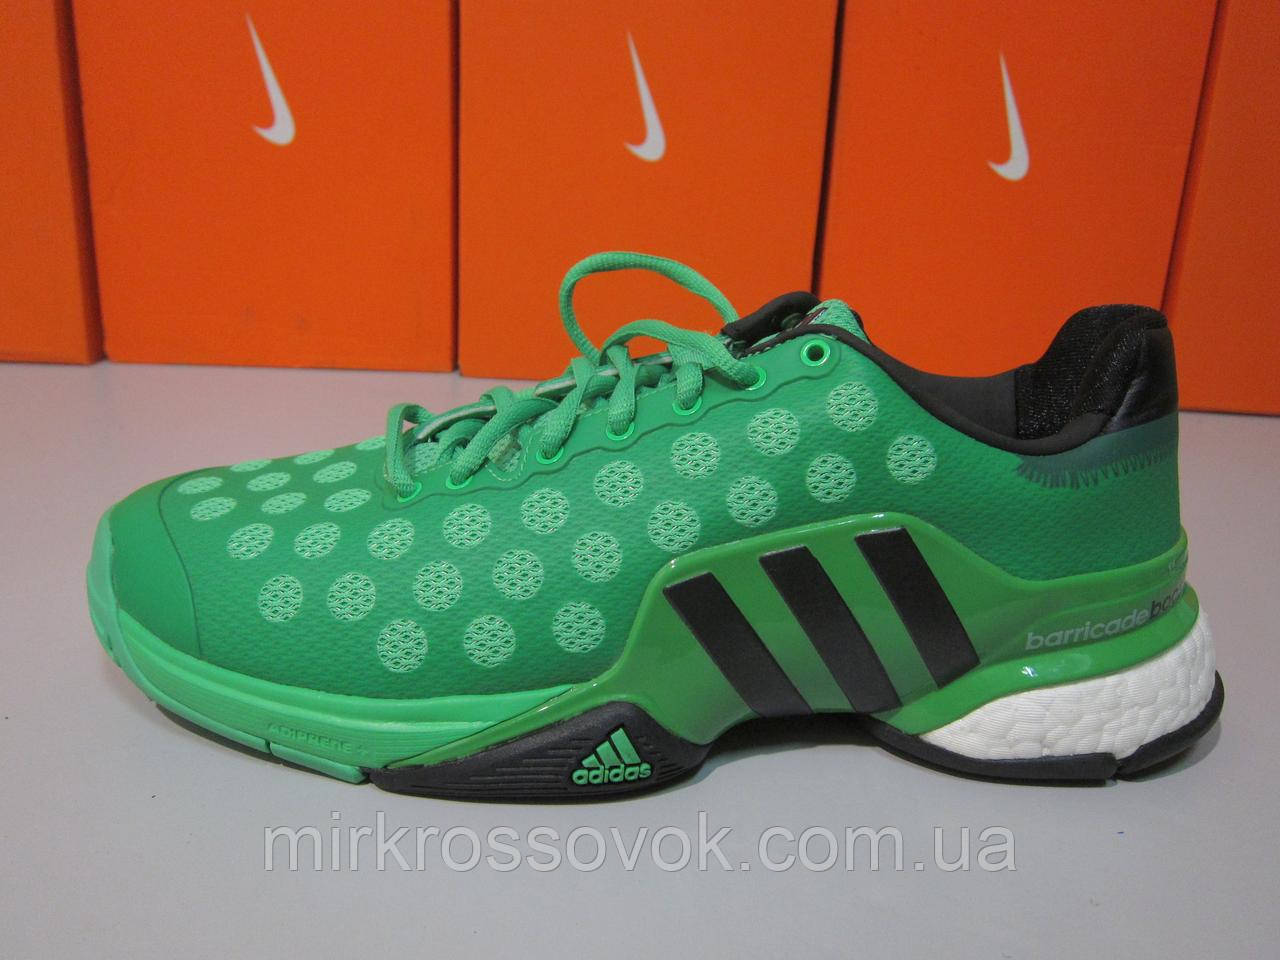 36559106 Кроссовки мужские Adidas Barricade 2015 Boost Tennis Shoes - AW15 (B33484)  (оригинал)